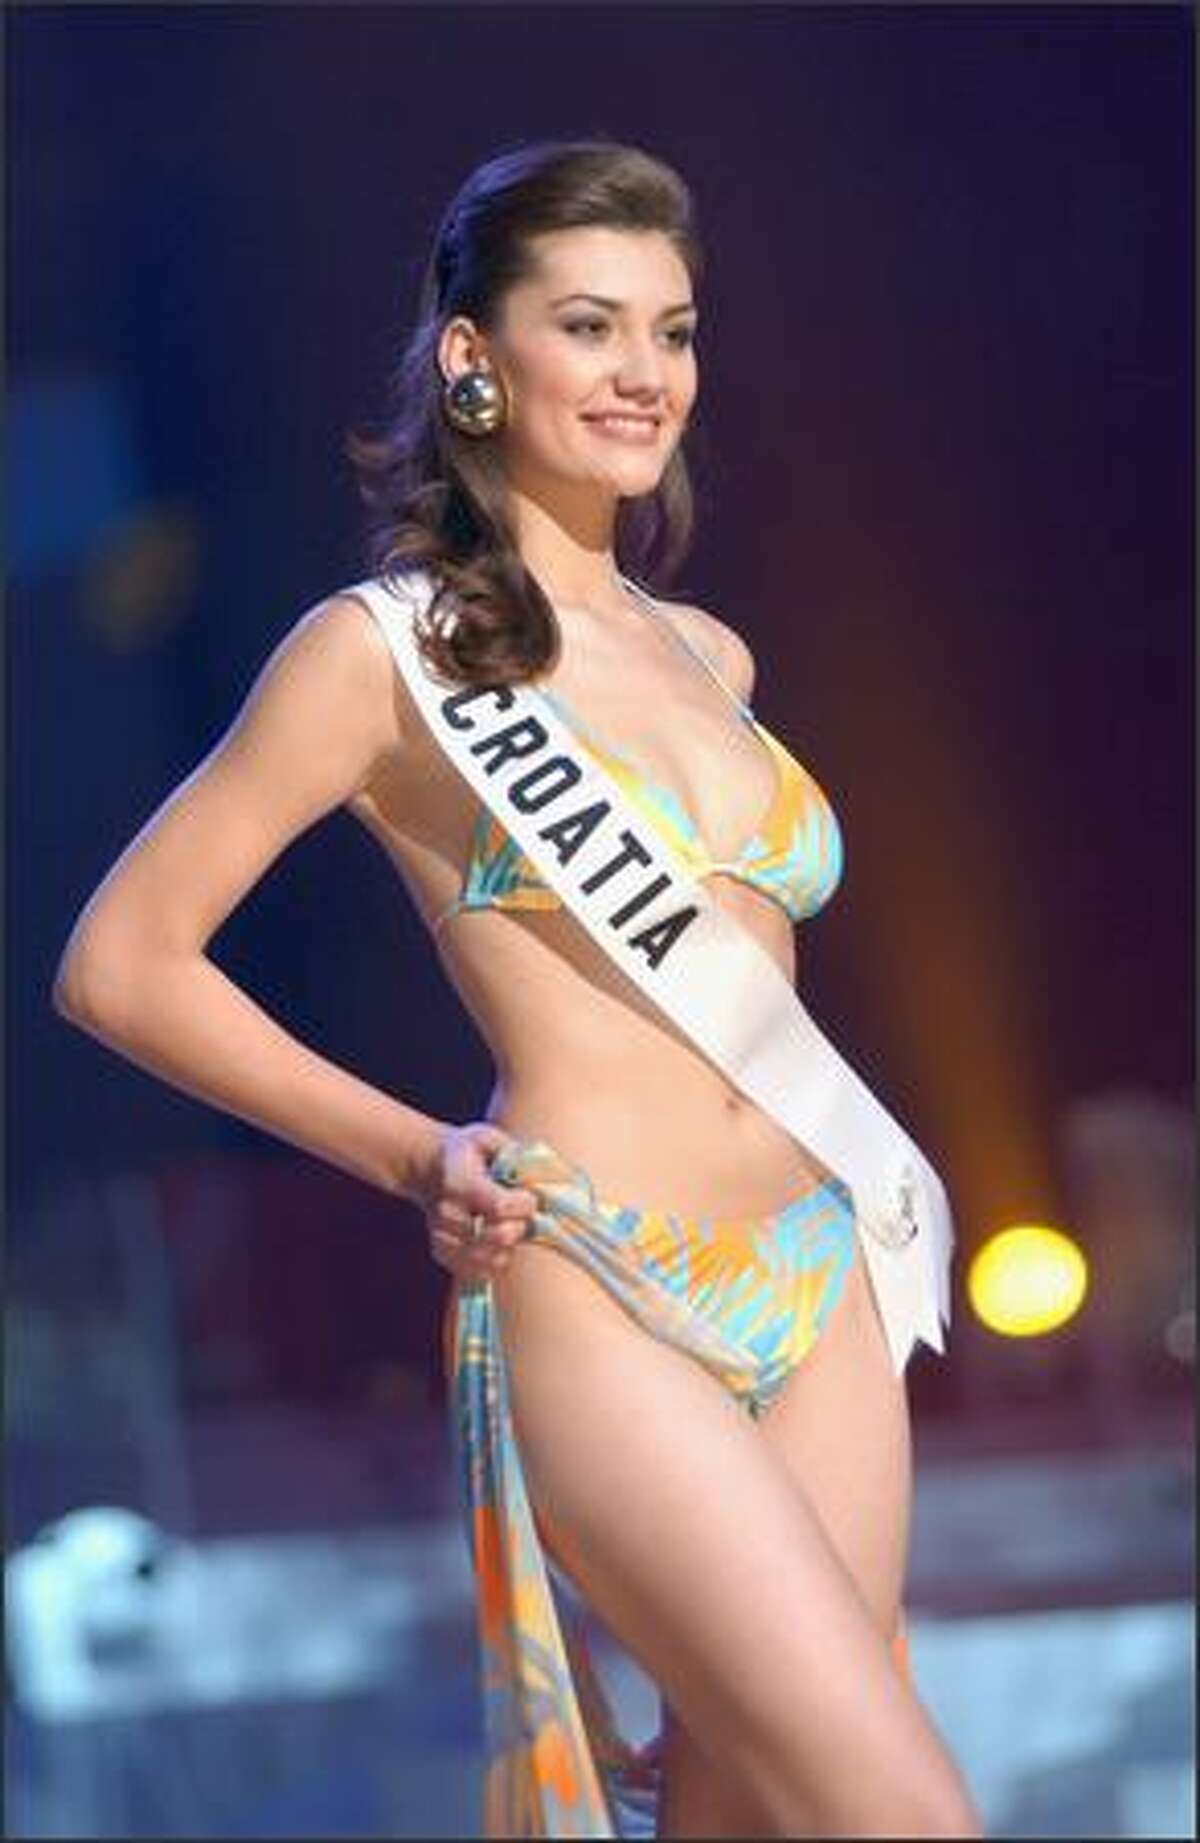 Marijana Rupcic, Miss Croatia, competes in her Endless Sun swimsuit during the 2004 Miss Universe Presentation Show on May 27 at CEMEXPO in Quito, Ecuador. Each delegate is judged by a preliminary panel of distinguished judges in three categories consisting of individual interview, swimsuit competition and evening gown competition. The scores will be tallied and the top 15 delegates will be announced during the NBC broadcast of the 53rd annual Miss Universe competition on June 1 at 9 p.m. (delayed PT).